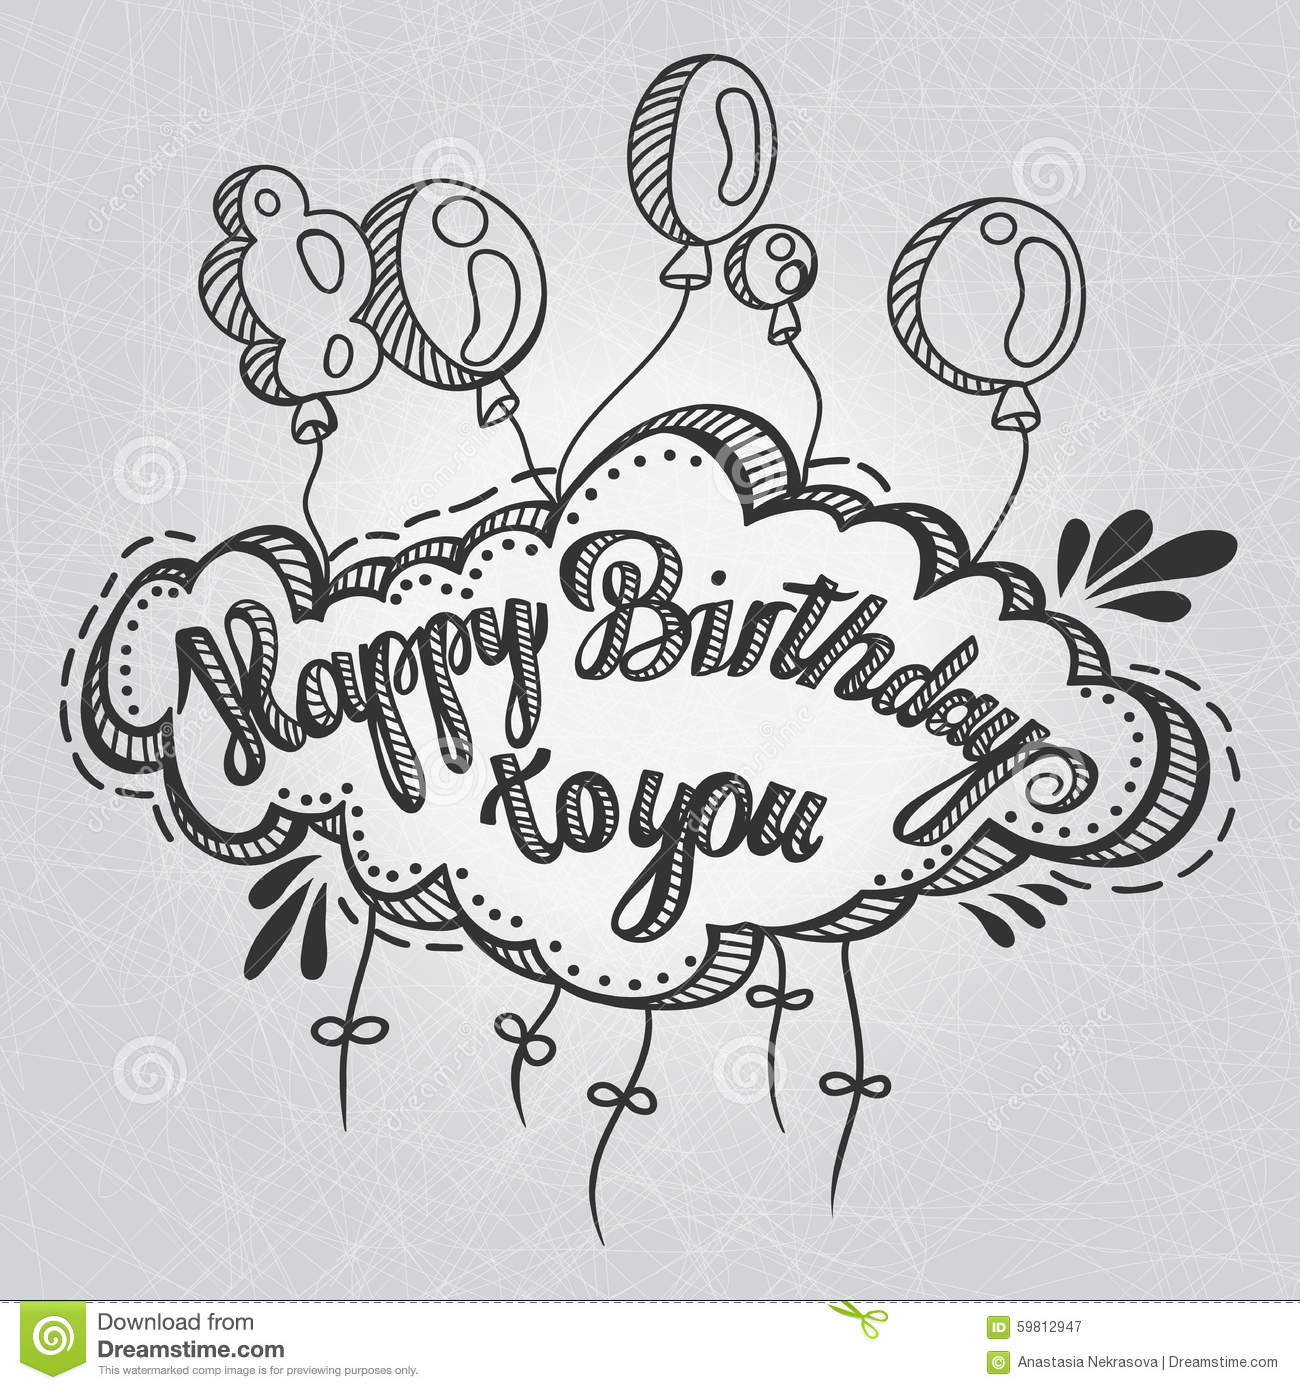 pictures to draw on birthday cards ; drawing-of-happy-birthday-greeting-card-happy-birthday-to-you-hand-drawing-greeting